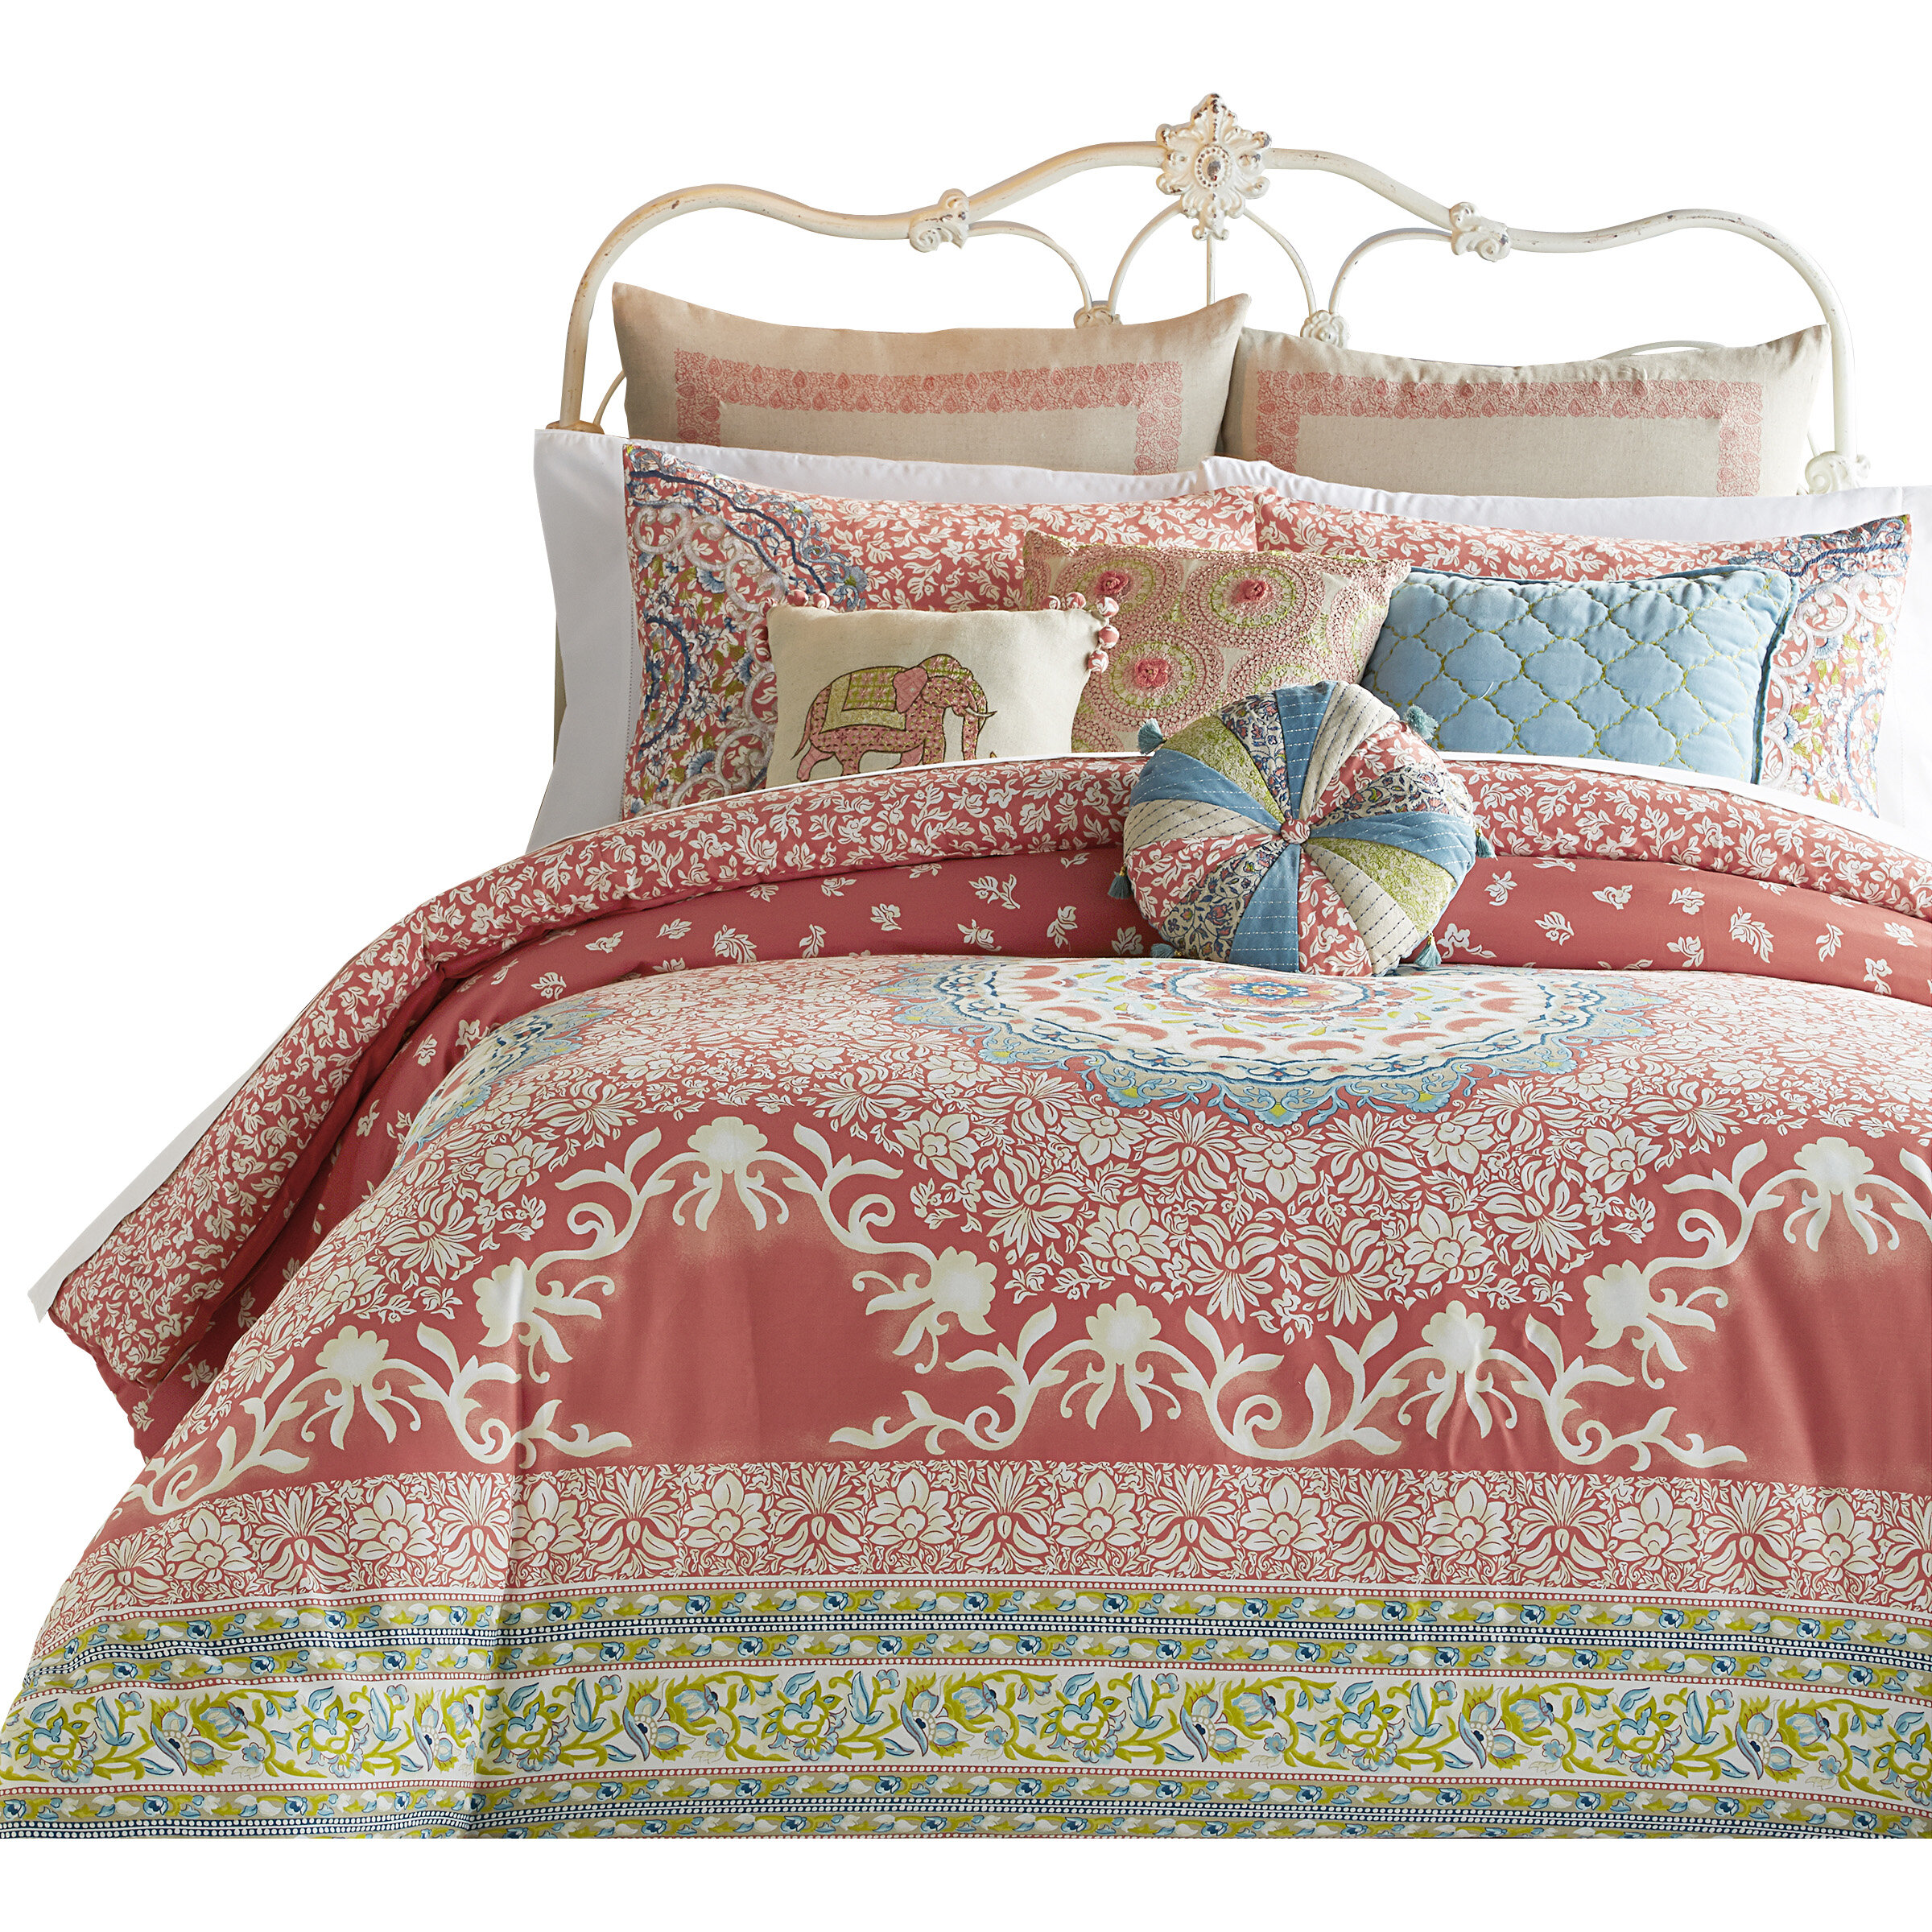 bedding pink princess queen image sets of bedazzling set lostcoastshuttle disney for ideas comforter twin